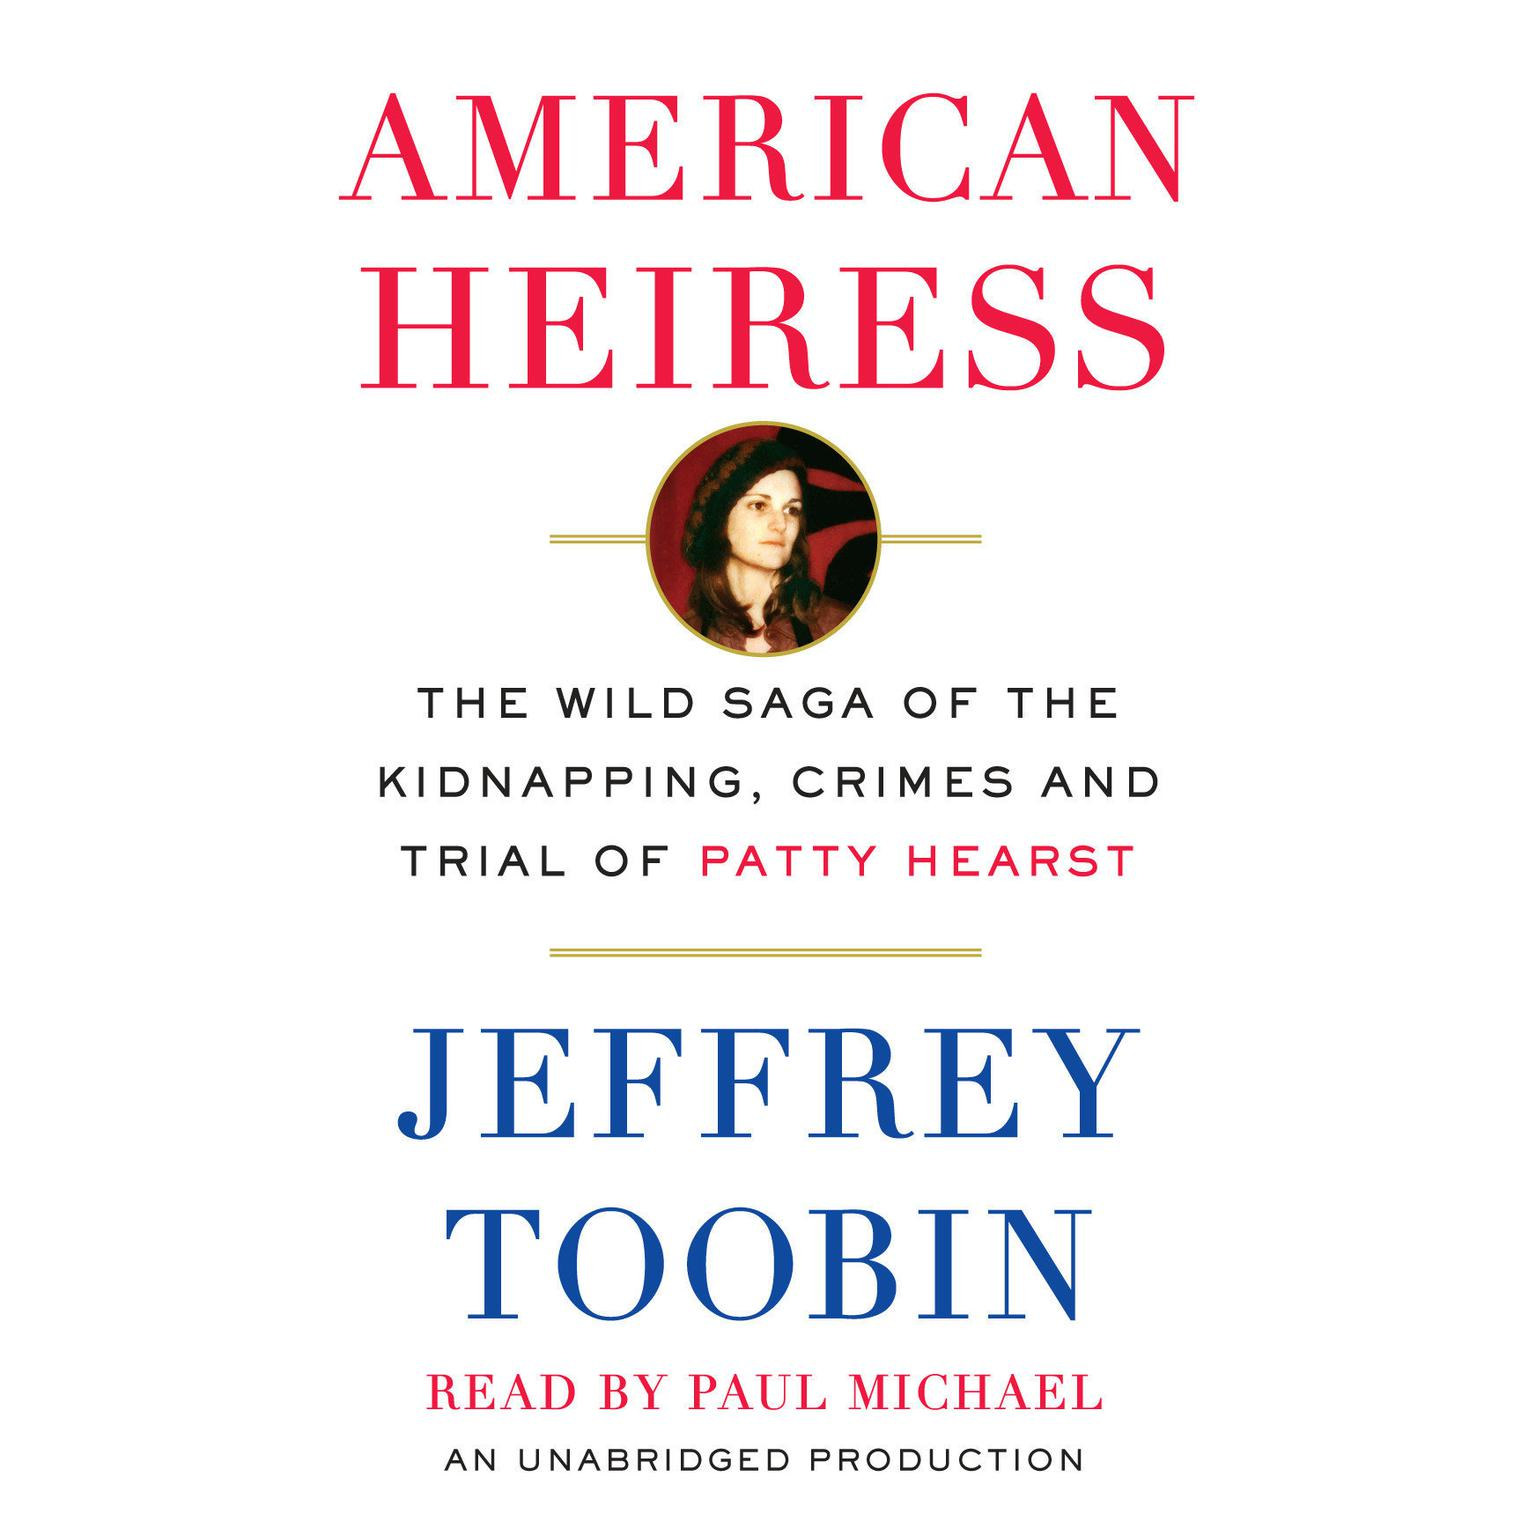 Printable American Heiress: The Wild Saga of the Kidnapping, Crimes, and Trial of Patty Hearst Audiobook Cover Art